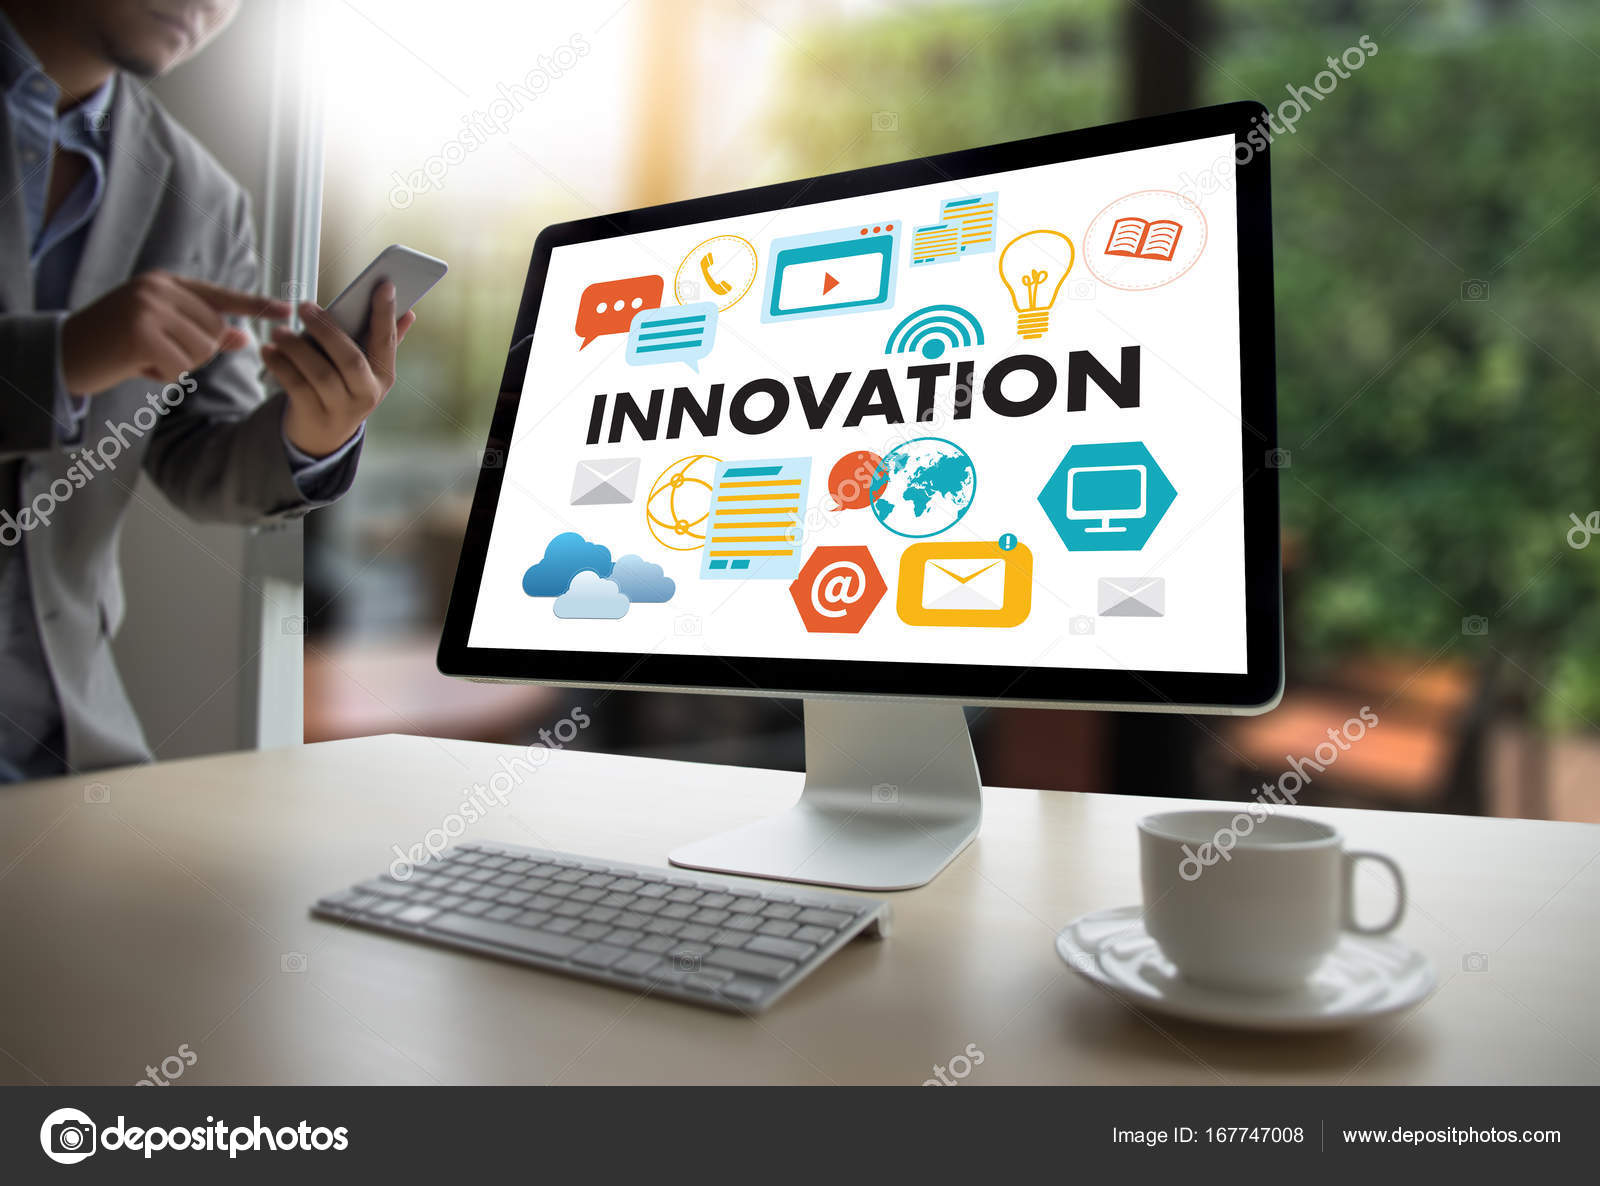 L innovation pense id es cr atives proces inventer for Idee innovation entreprise